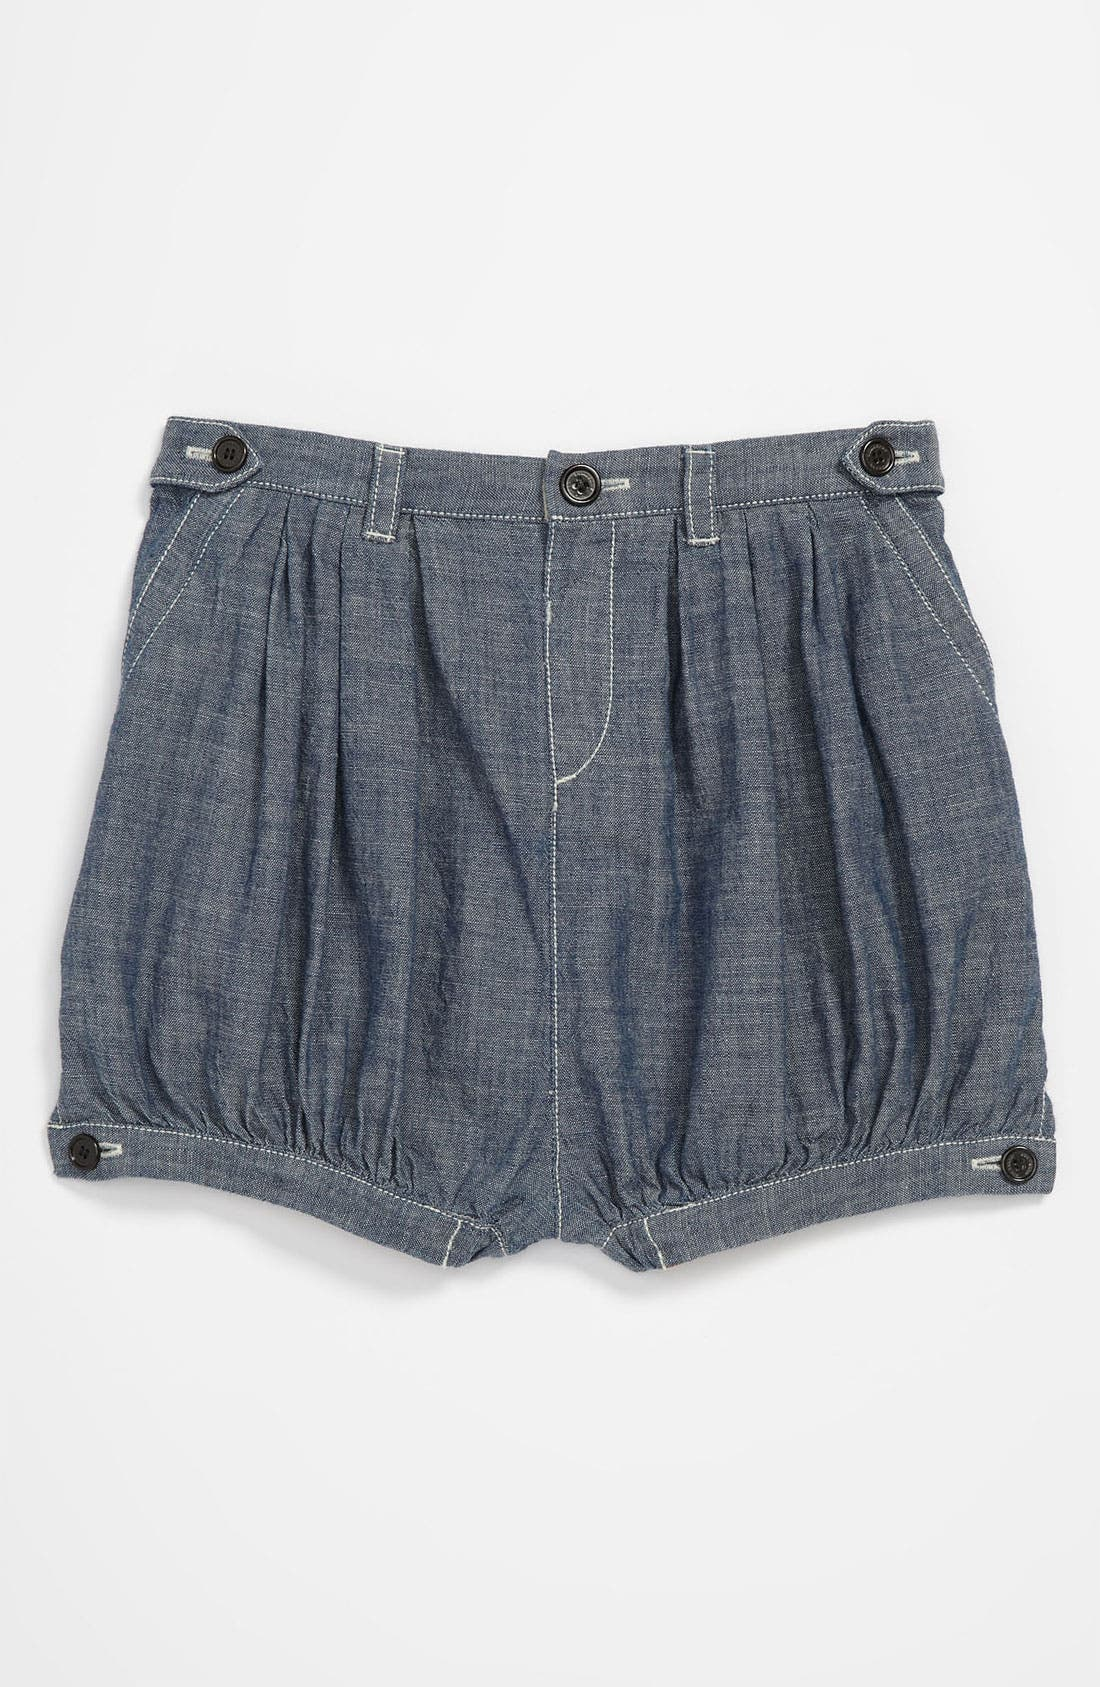 Alternate Image 1 Selected - Burberry 'Sally' Woven Shorts (Infant)